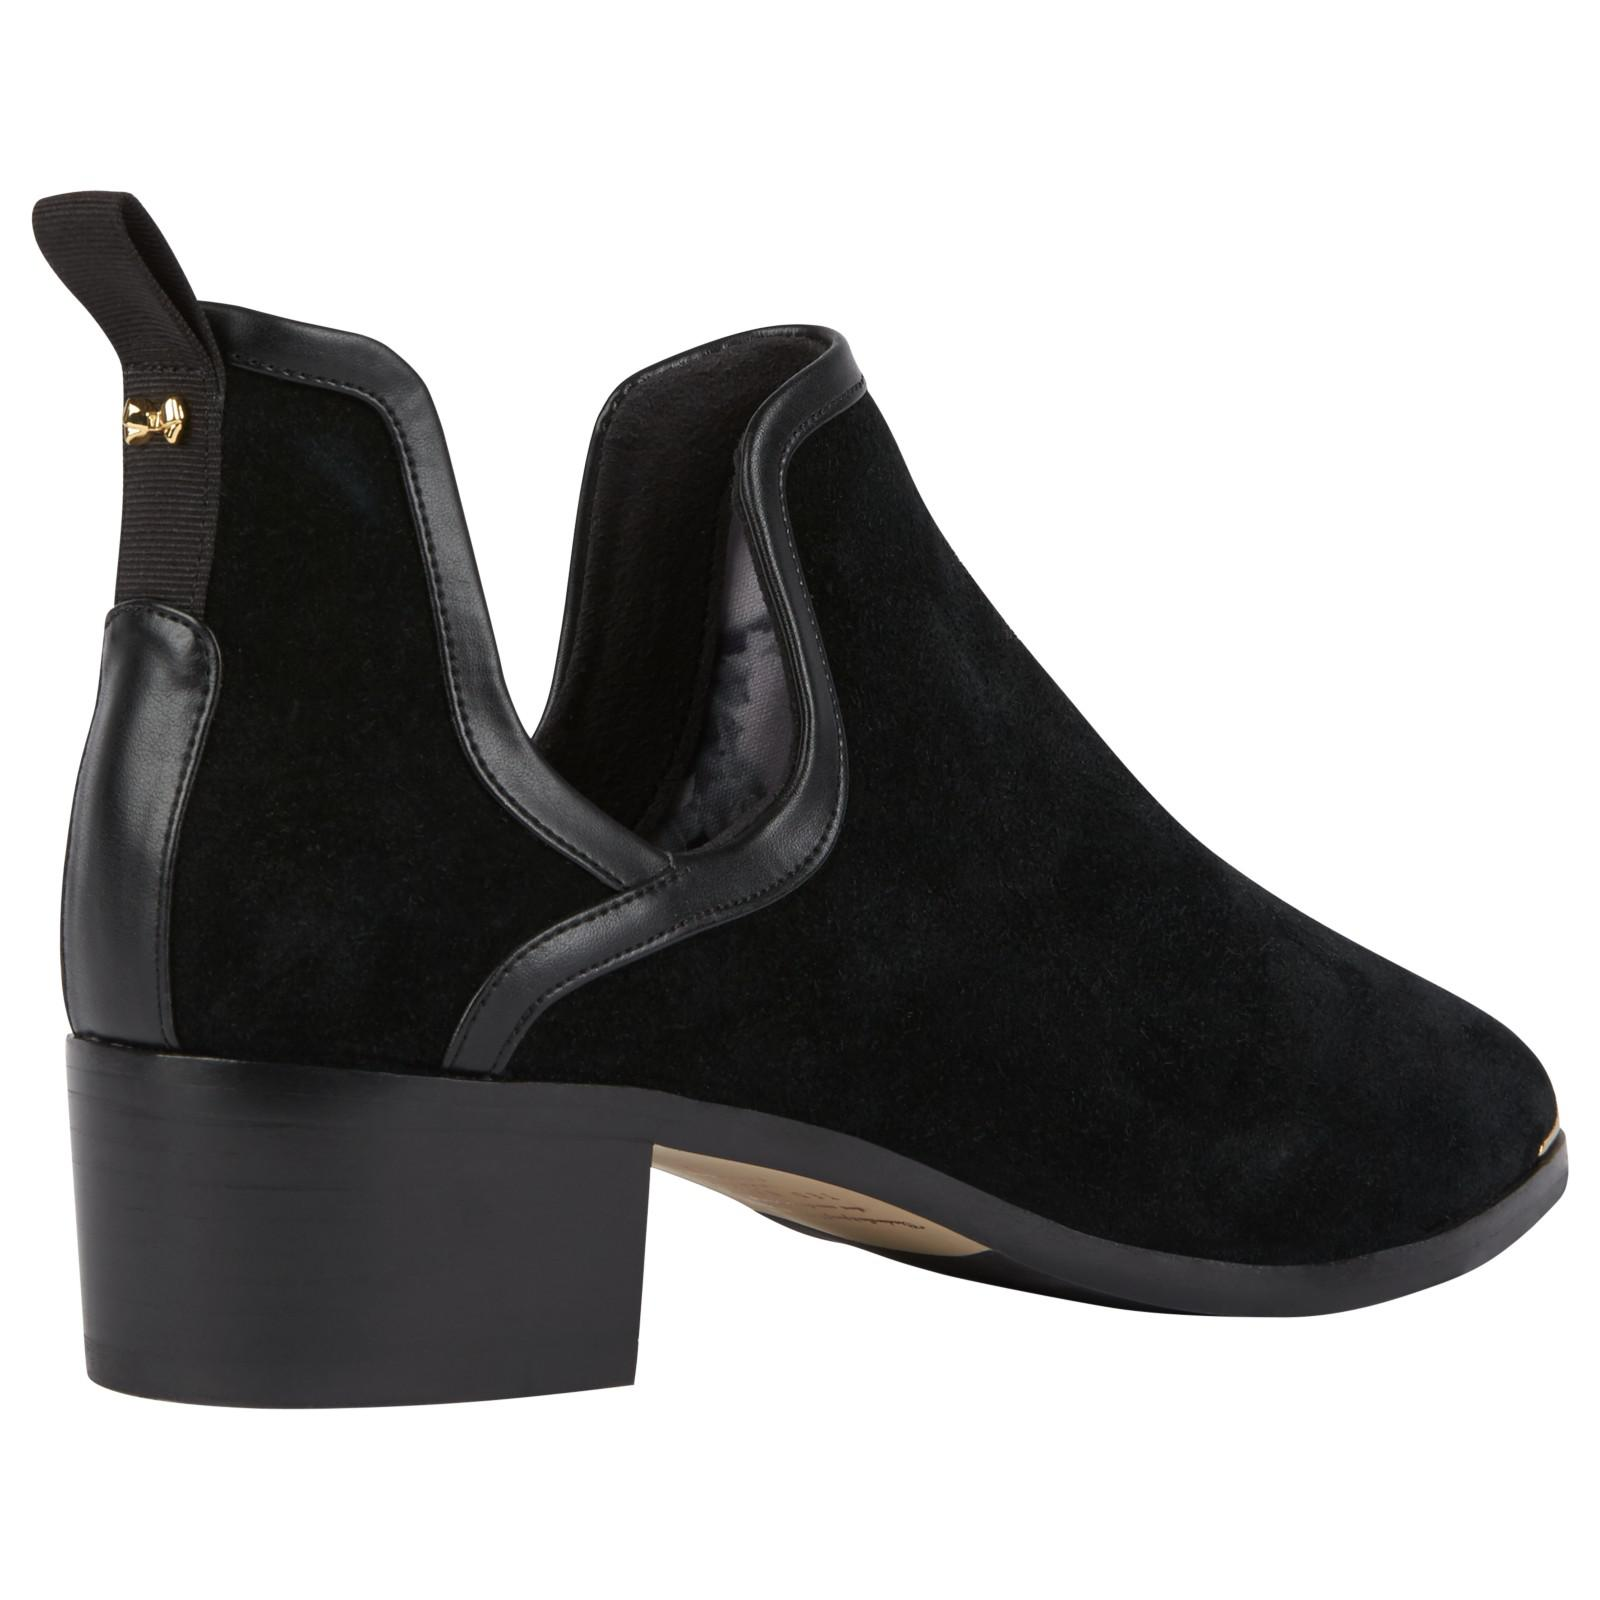 41e59c8047bc Ted Baker Twillo Cut Out Ankle Boots in Black - Lyst